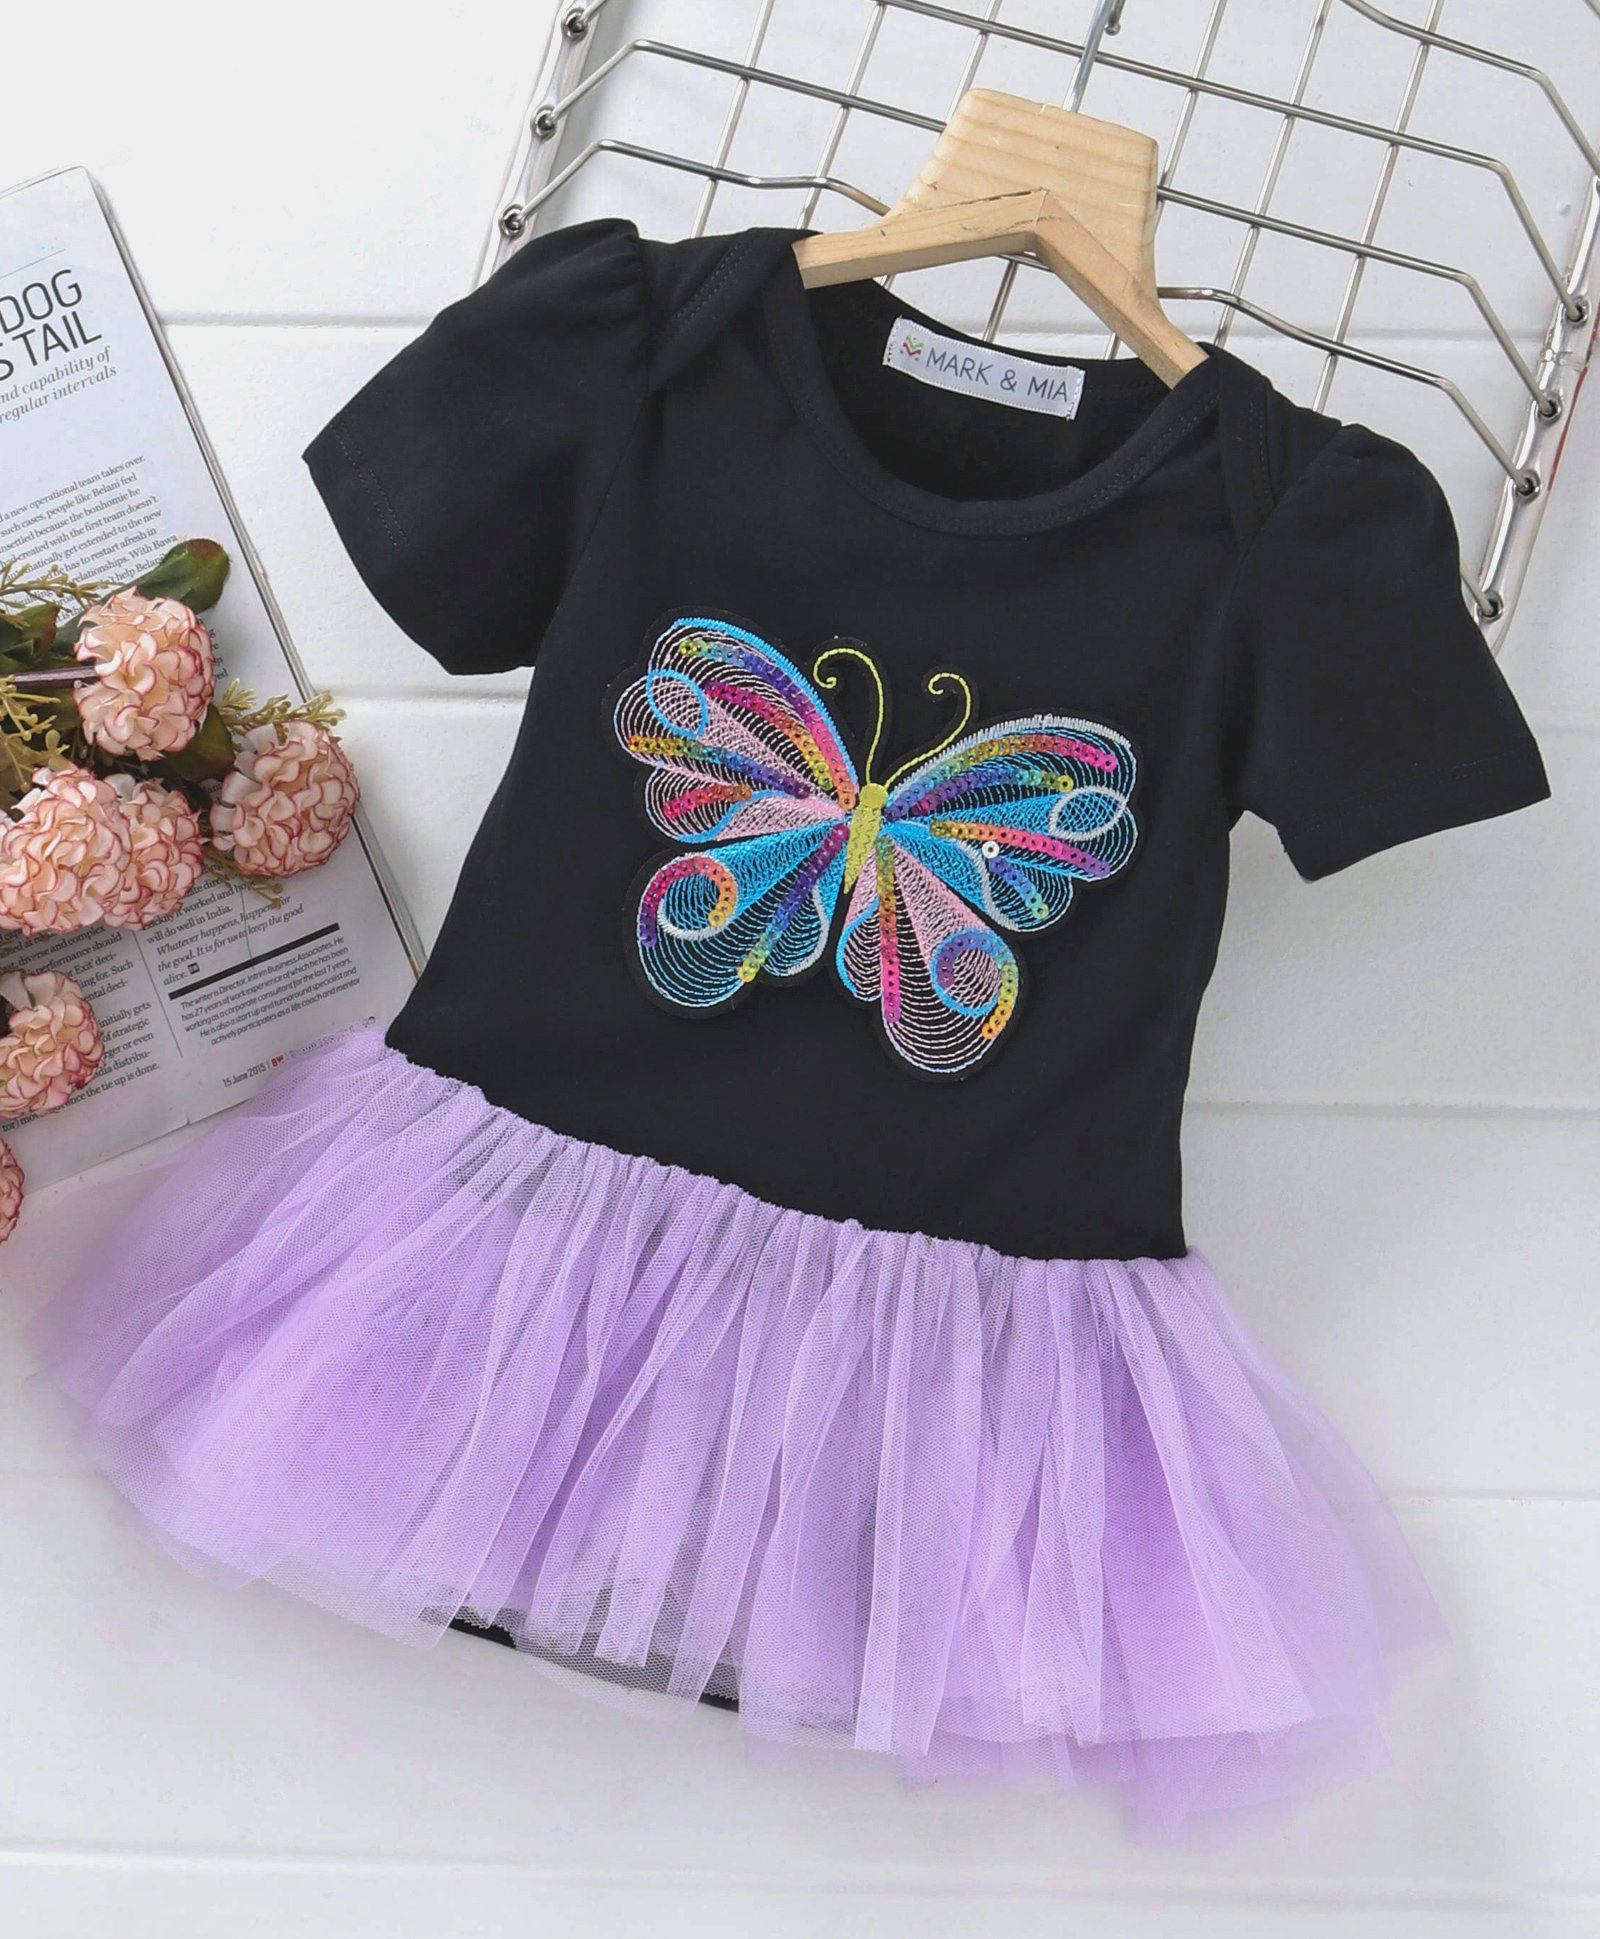 Mark   Mia Party Wear Short Sleeves Frock Style Onesie Butterfly  Embroidered - Black Purple 52c1946731d